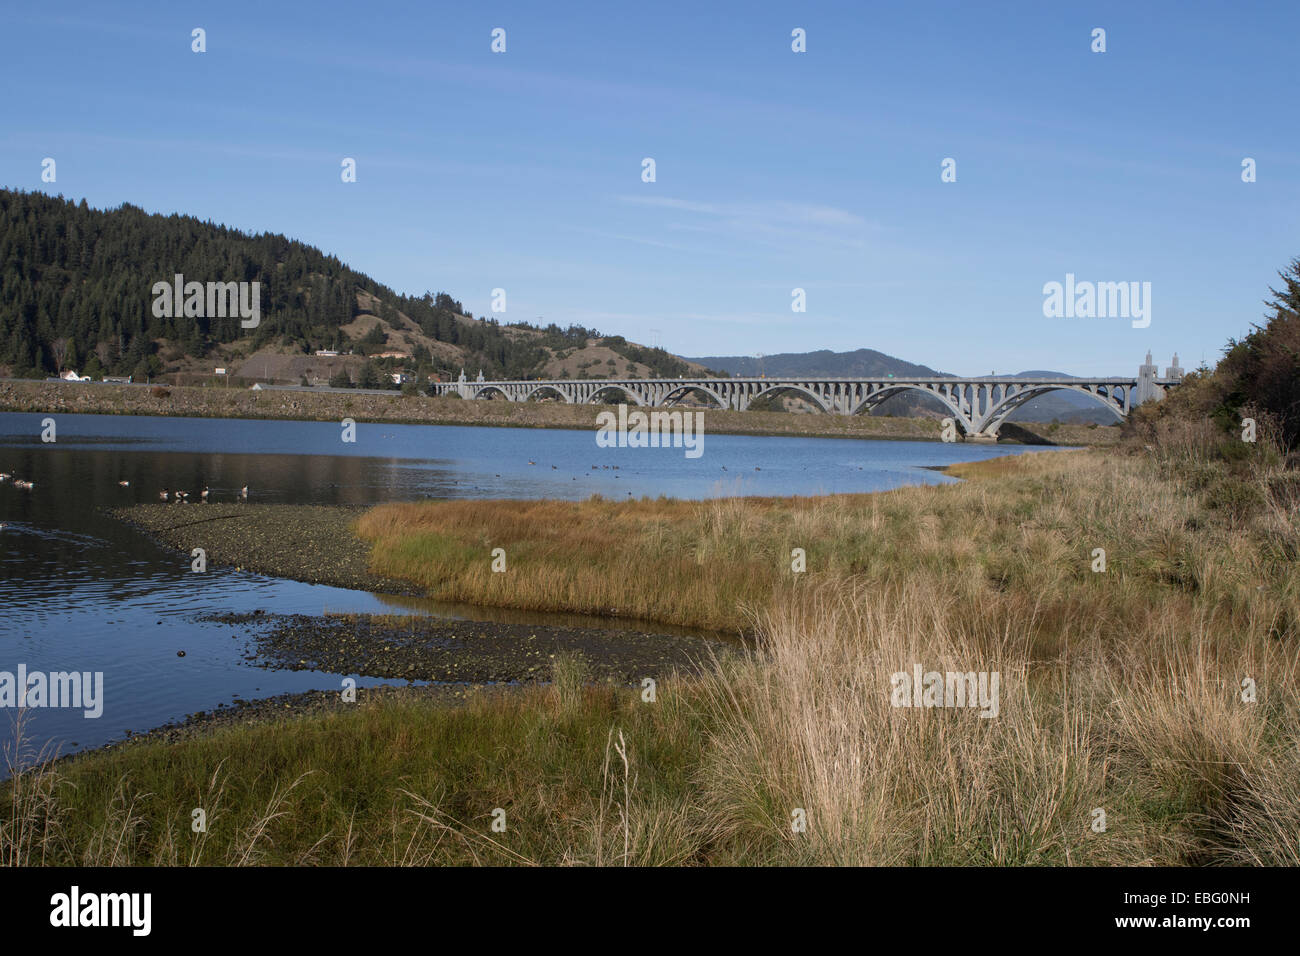 Isaac Lee Patterson Bridge over the Rogue River in Curry County, Oregon - Stock Image